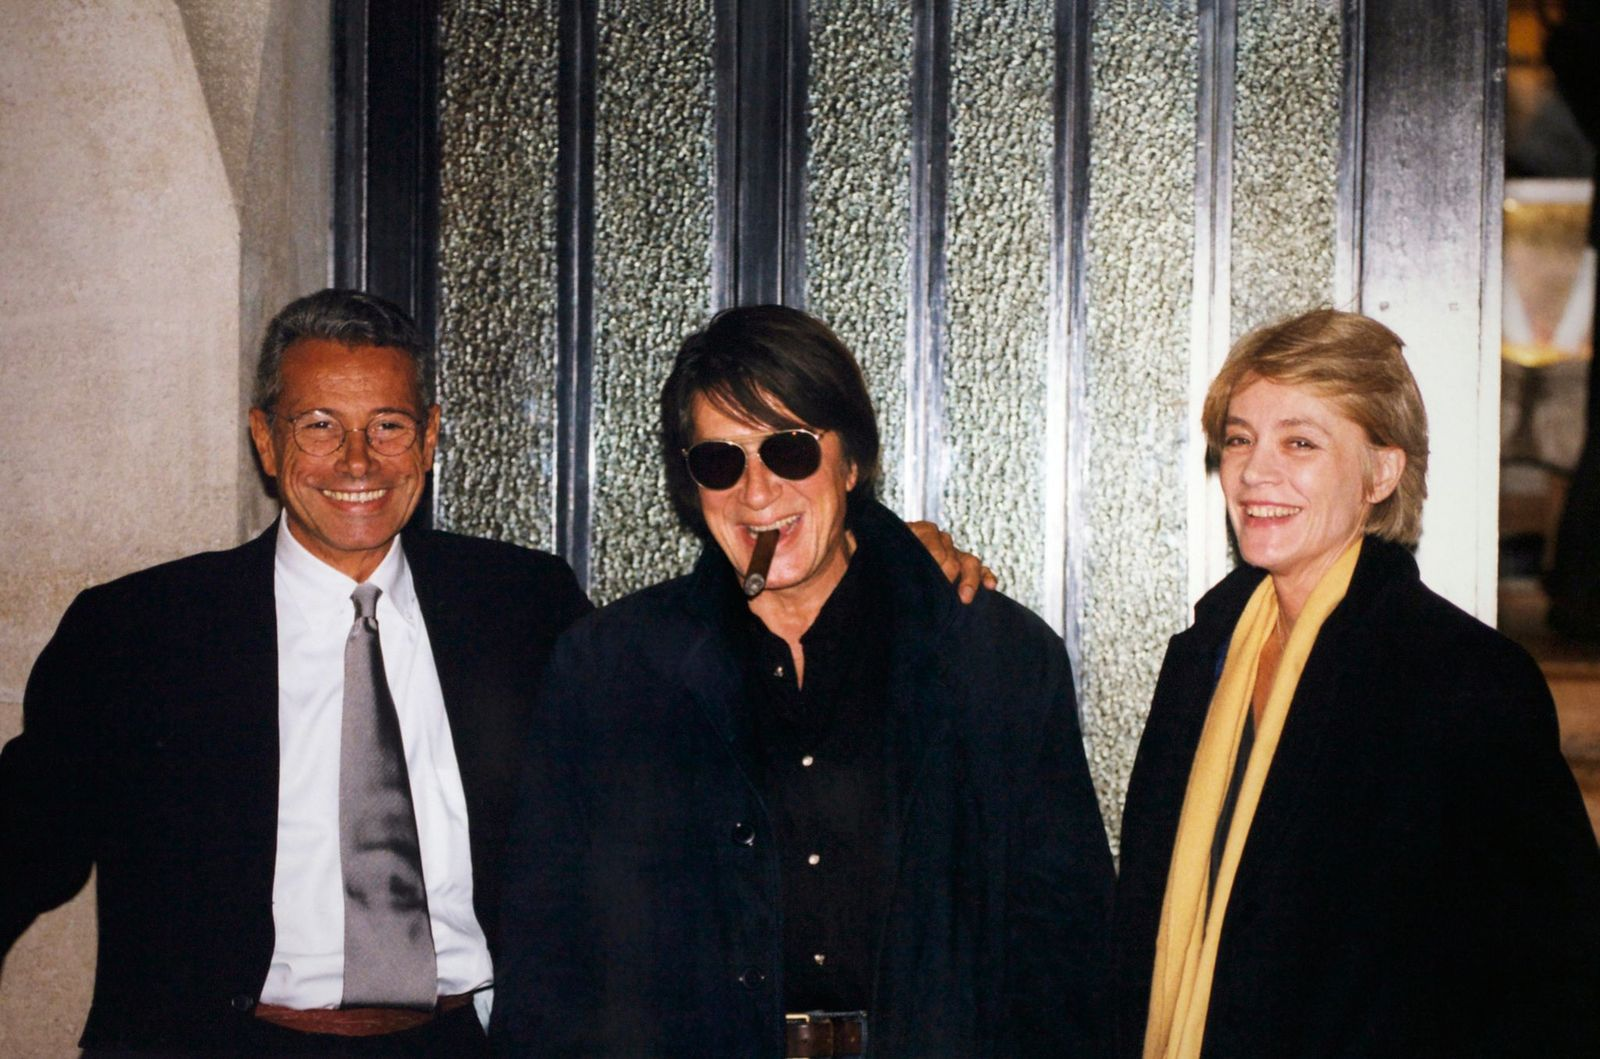 Jean-Marie Périer, Françoise Hardy et Jacques Dutronc | Photo : Getty Images